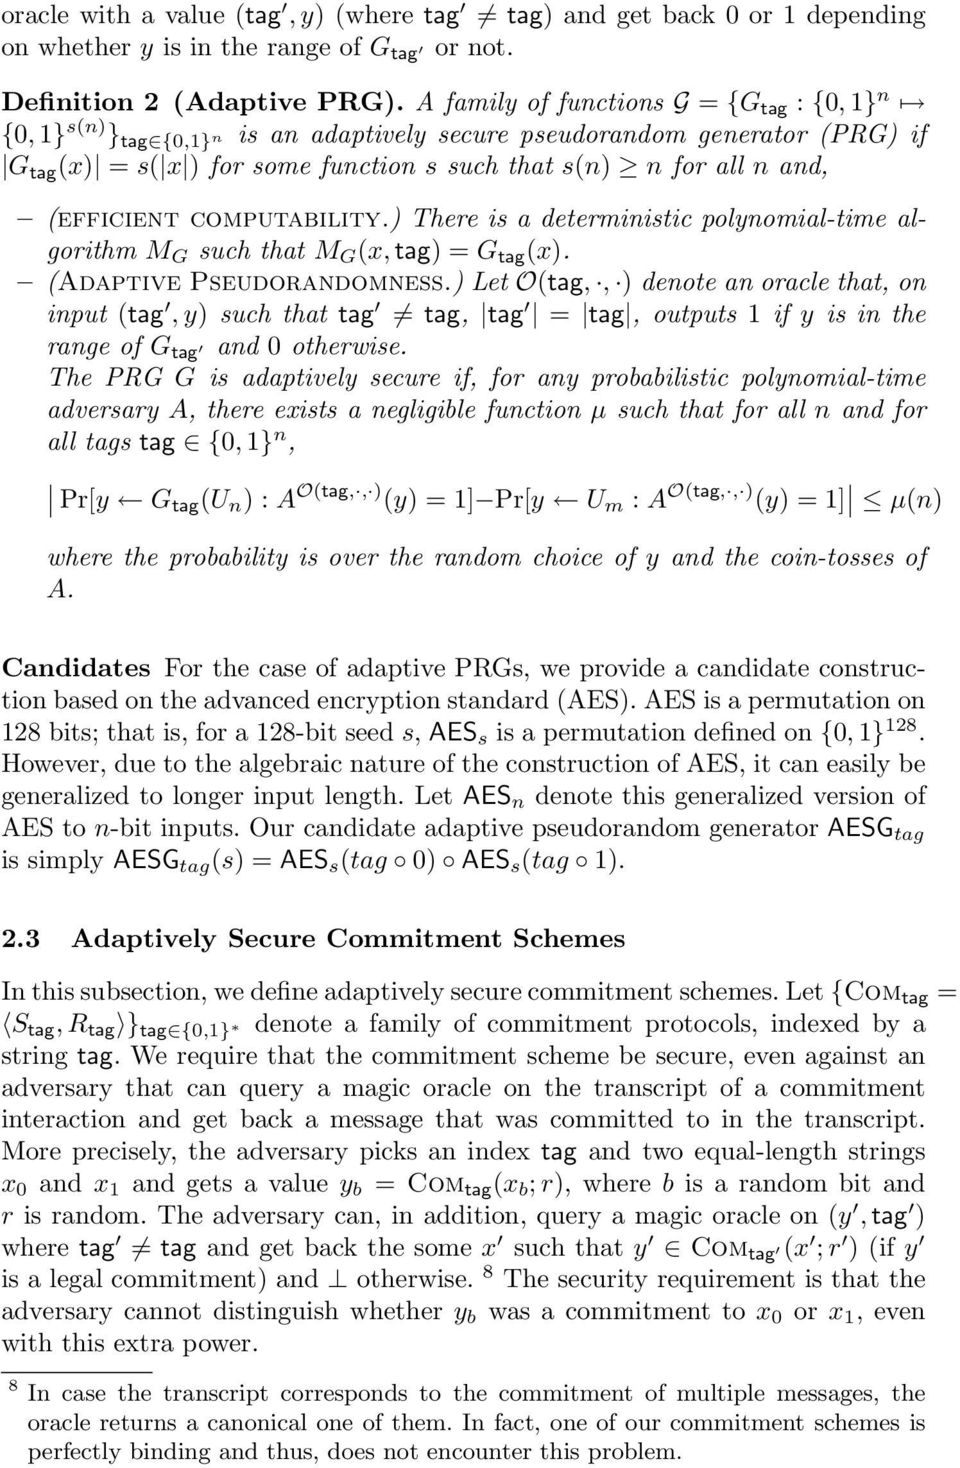 (efficient computability.) There is a deterministic polynomial-time algorithm M G such that M G (x, tag) = G tag (x). (Adaptive Pseudorandomness.